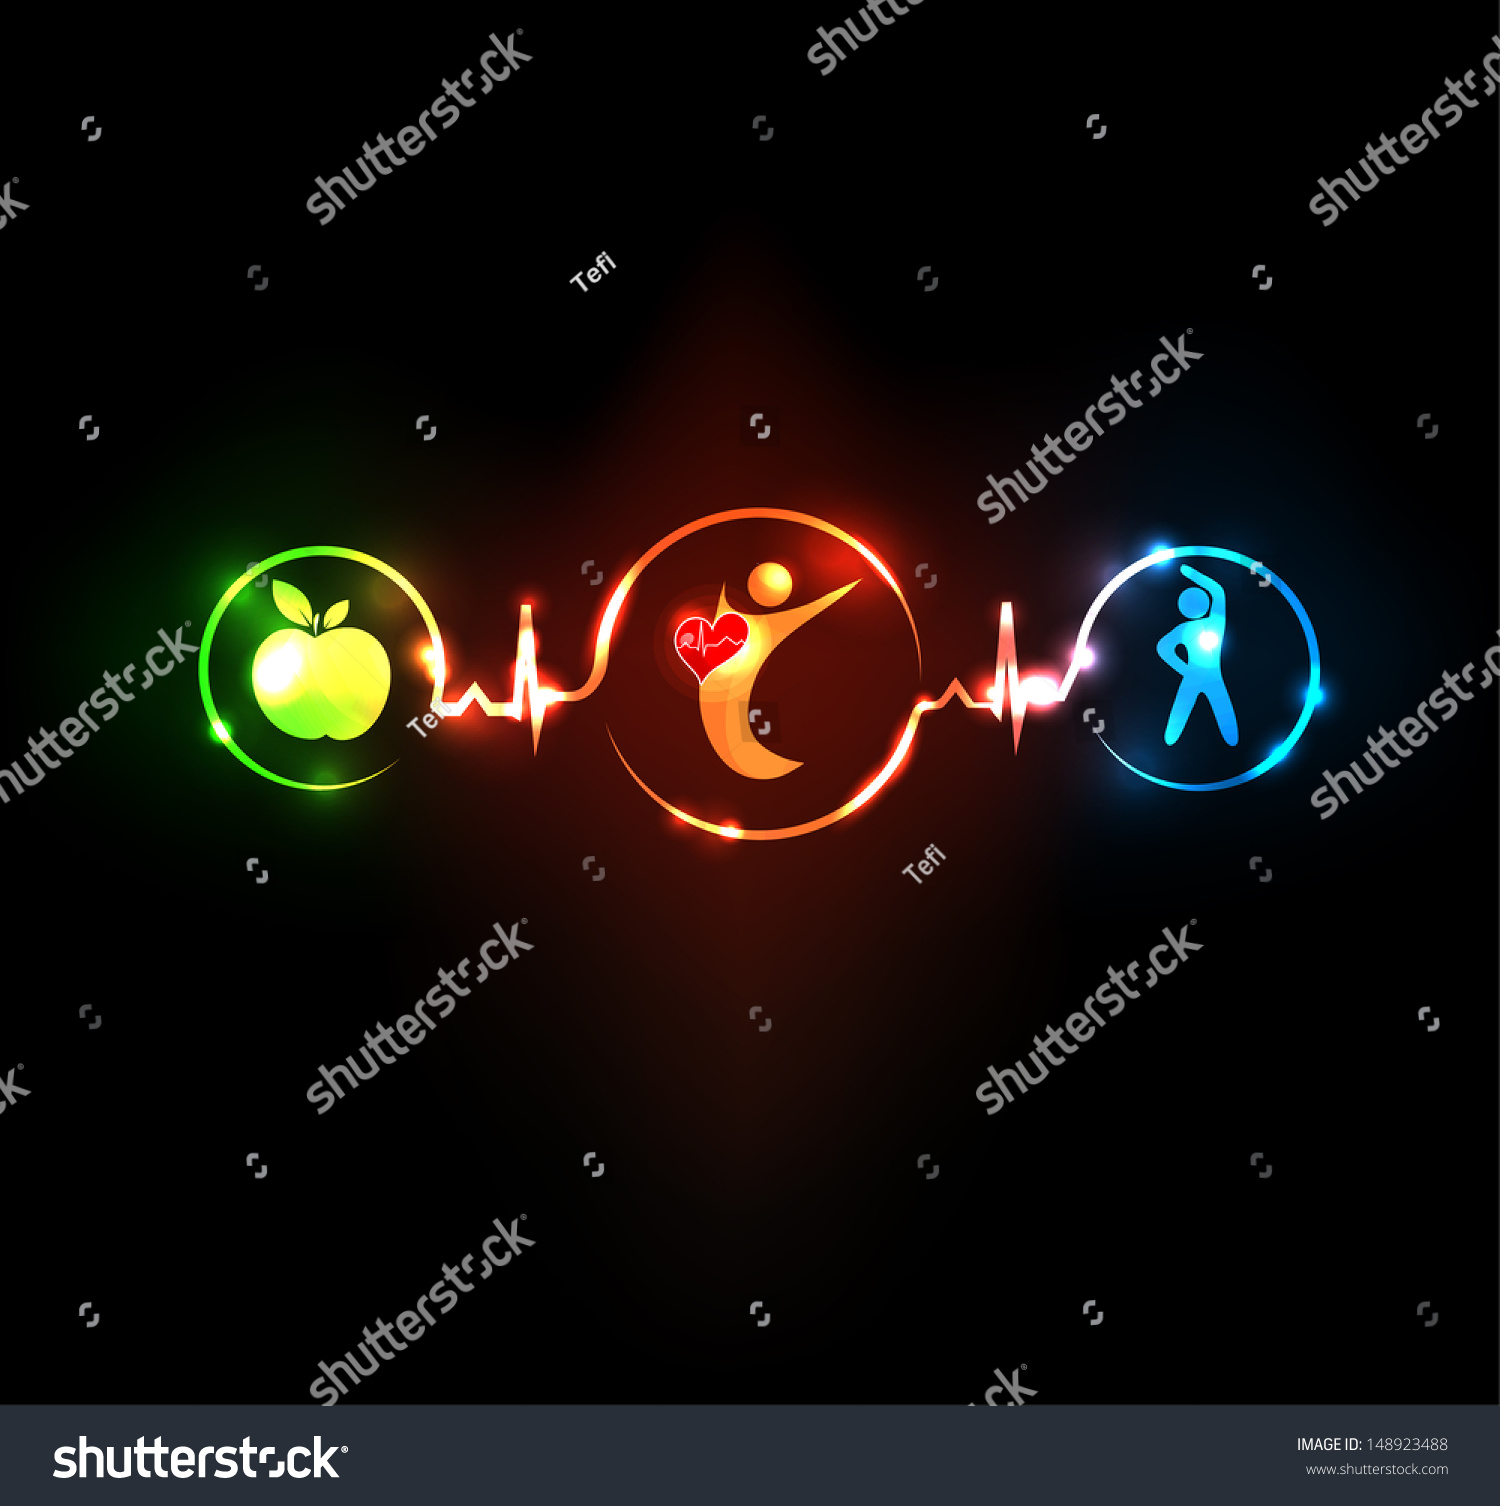 Wellness Illustration Healthy Food Fitness Leads Stock Vector